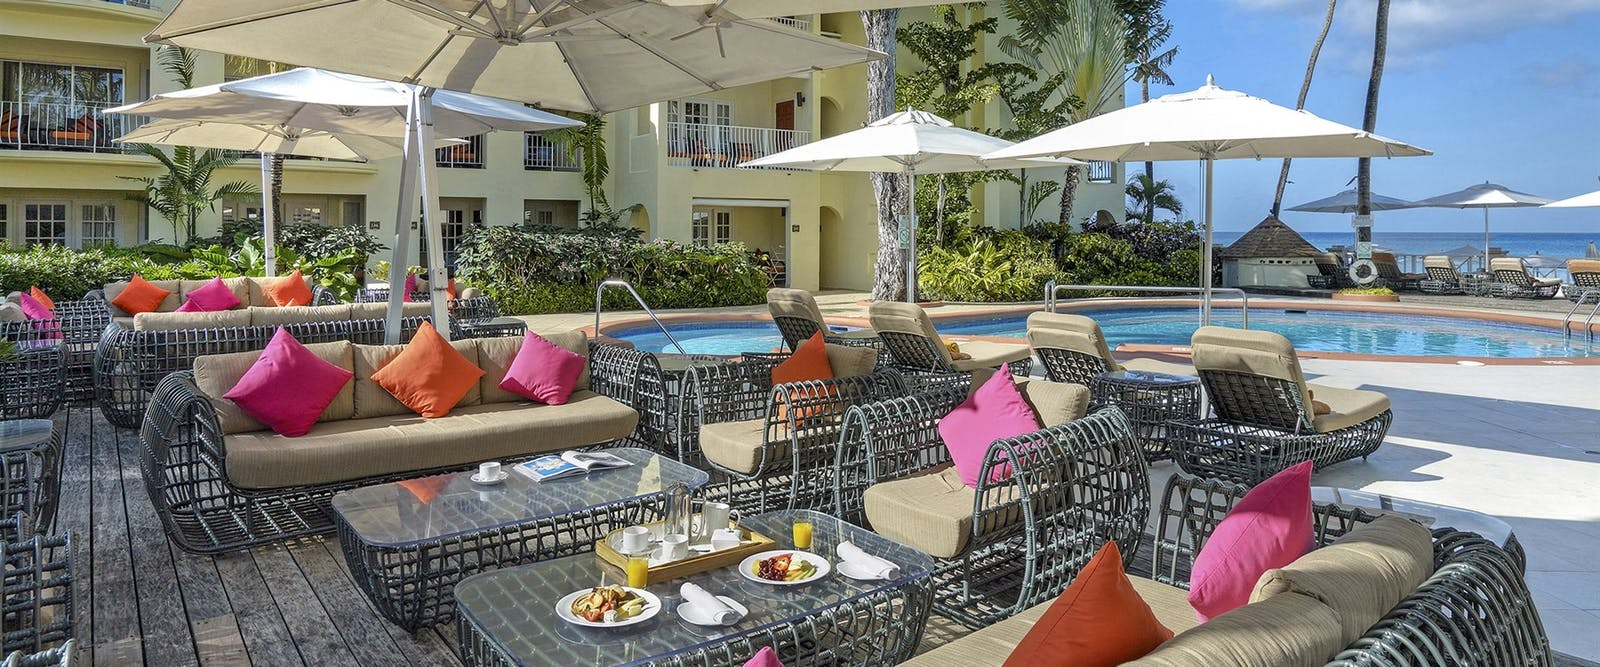 Rilaks Pool Deck at Tamarind by Elegant Hotels, Barbados